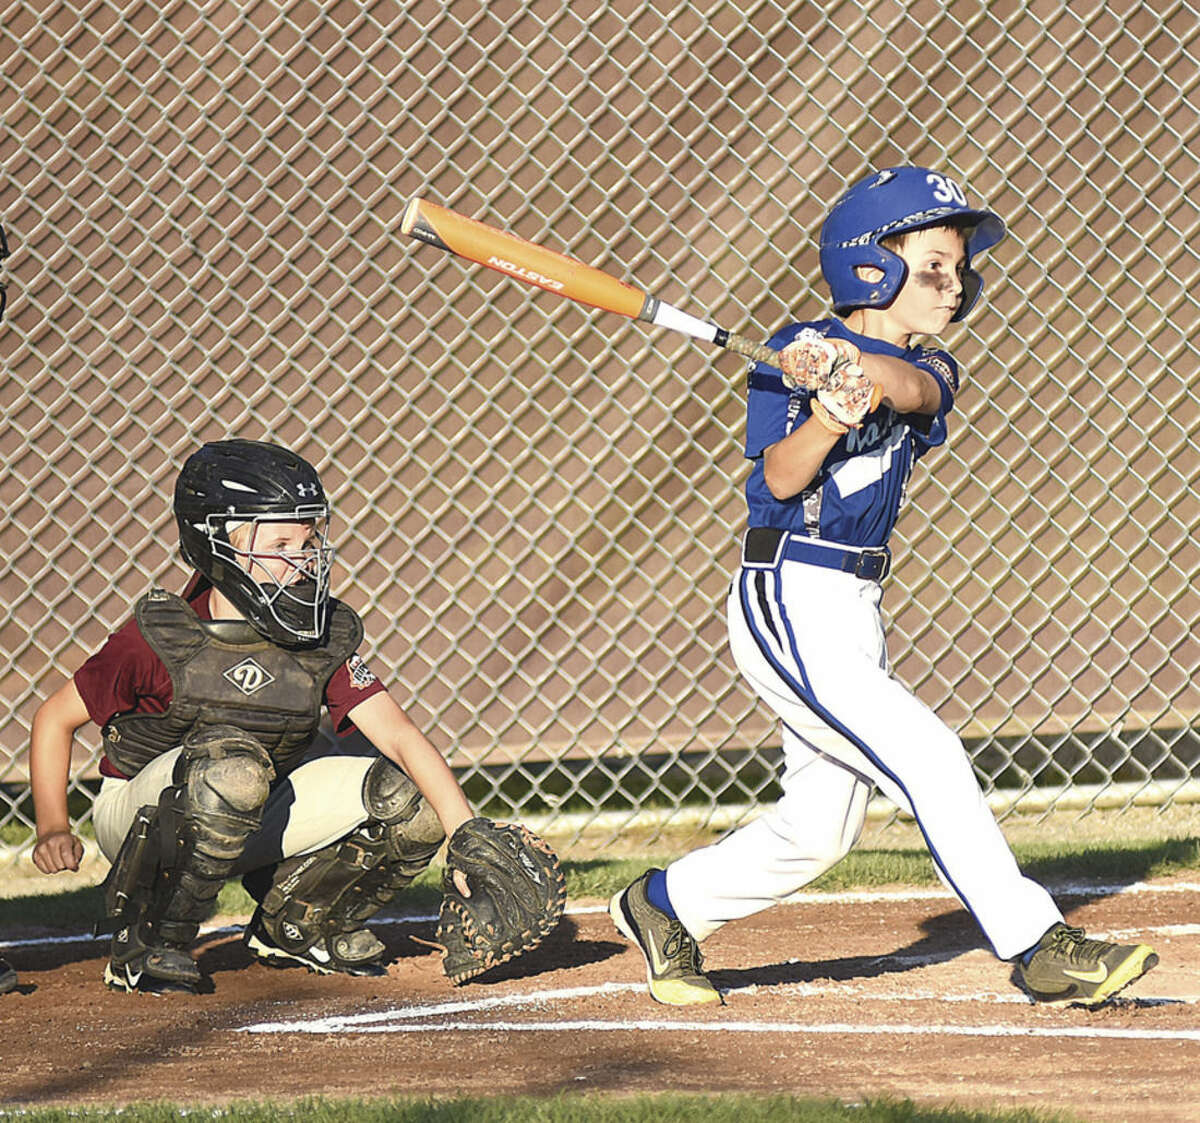 Hour photo/John Nash Norawlk 9s lead-off hitter Wil Staltzer sets the table for his team which will play in this weekend's 9-year-old All-Star New England Regionals in Hebron.